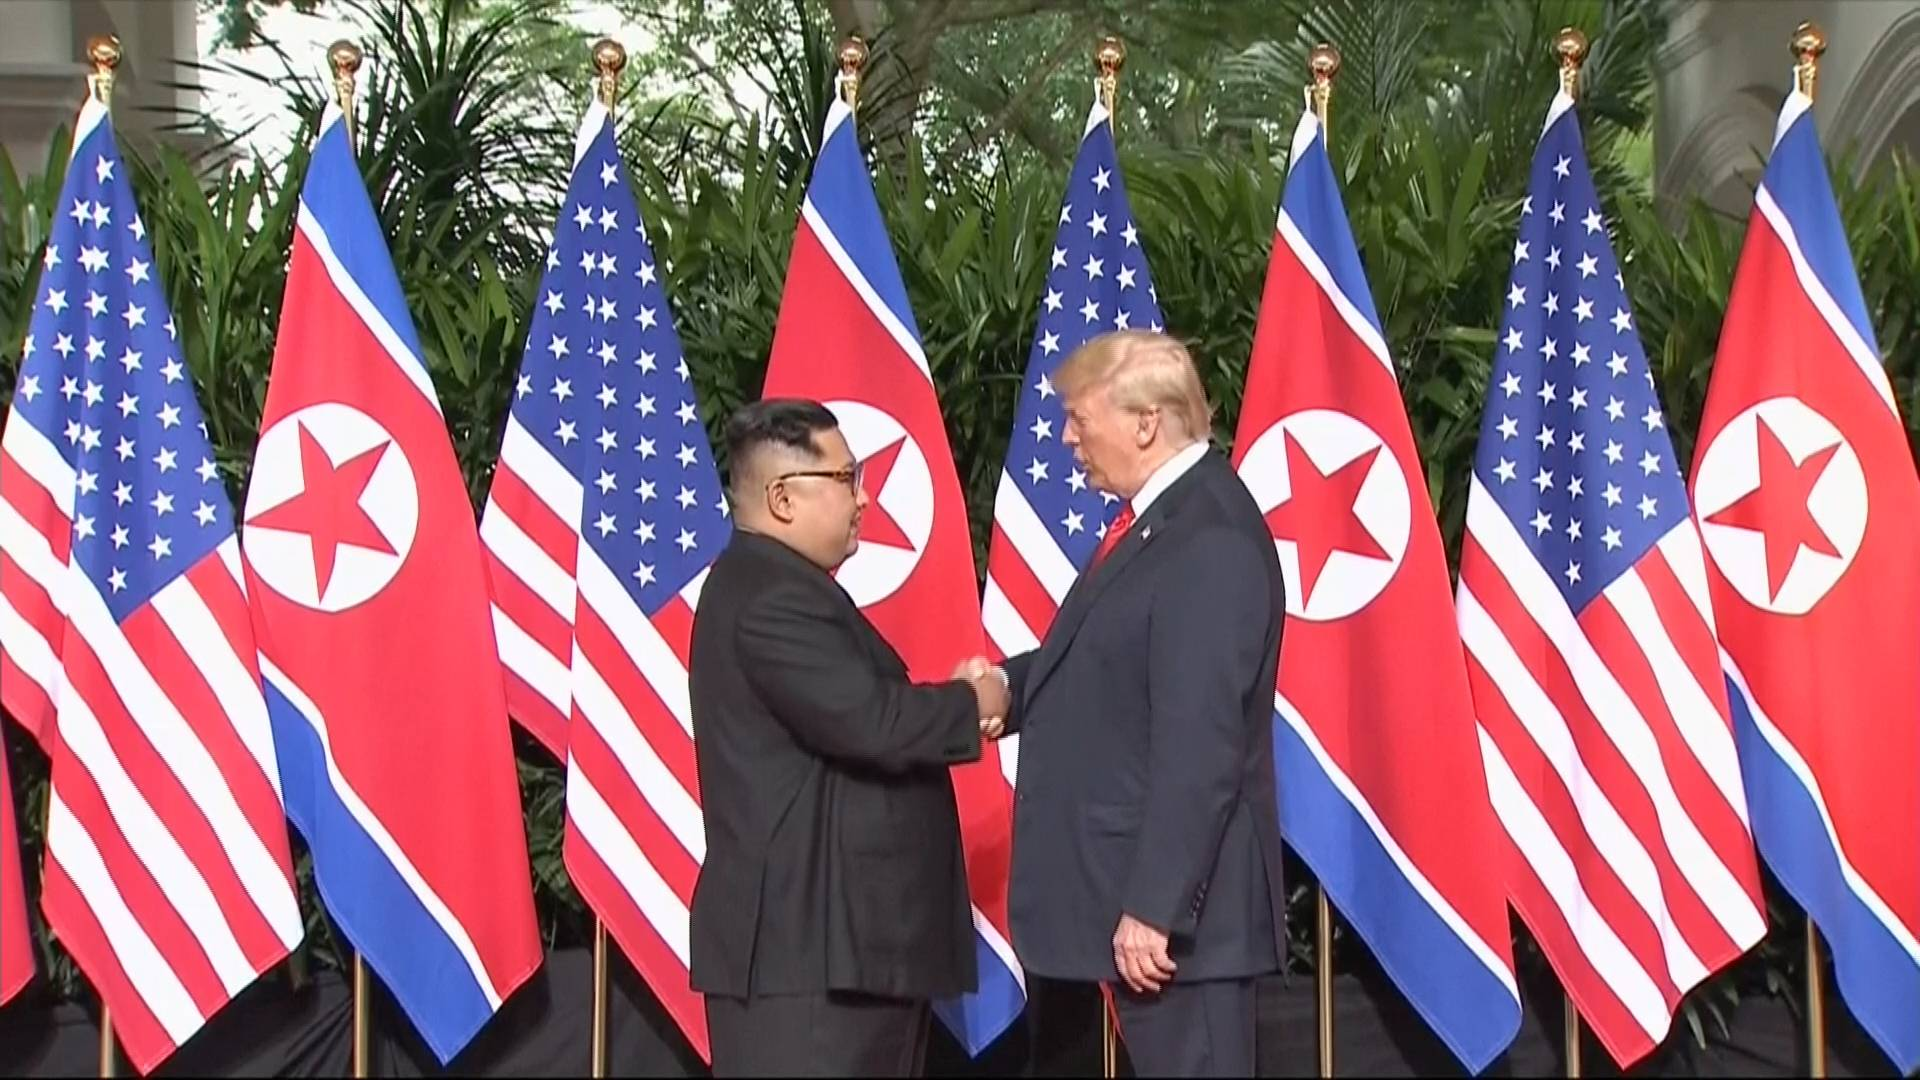 U.S. President Donald Trump and North Korean leader Kim Jong Un shake hands ahead of their meeting at Capella Hotel in Singapore, Tuesday local time.